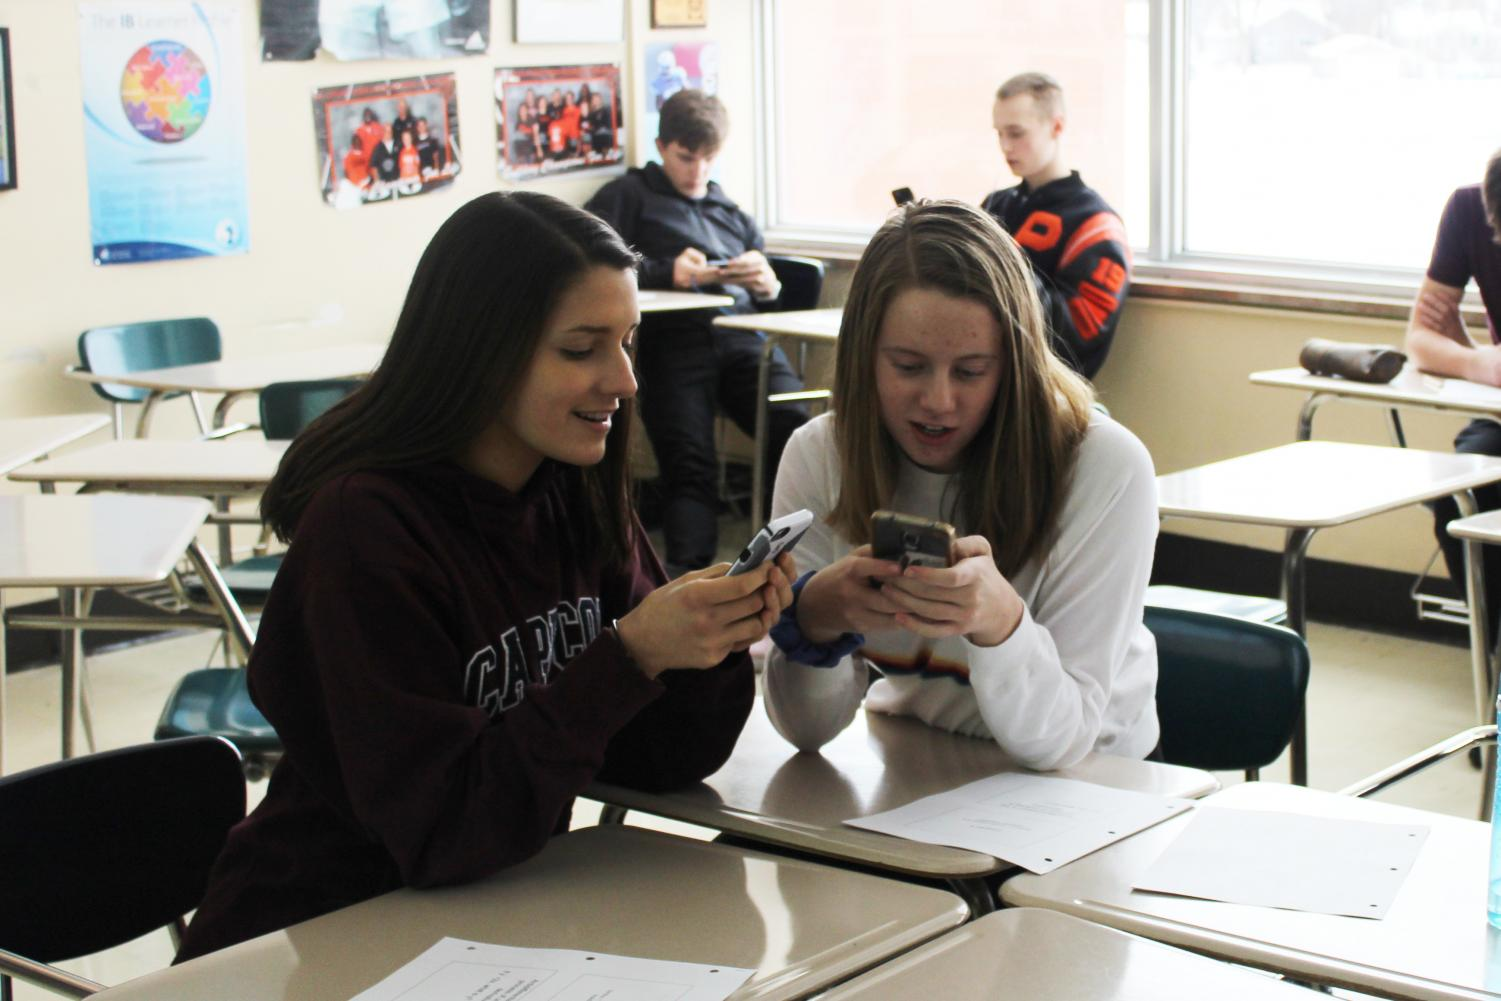 Juniors Lily Kulevsky and Claudia Stone take the Student Engagement Survey during their math class on Dec. 18. The Student Engagement Survey helps teachers learn how to improve different areas in the classroom.